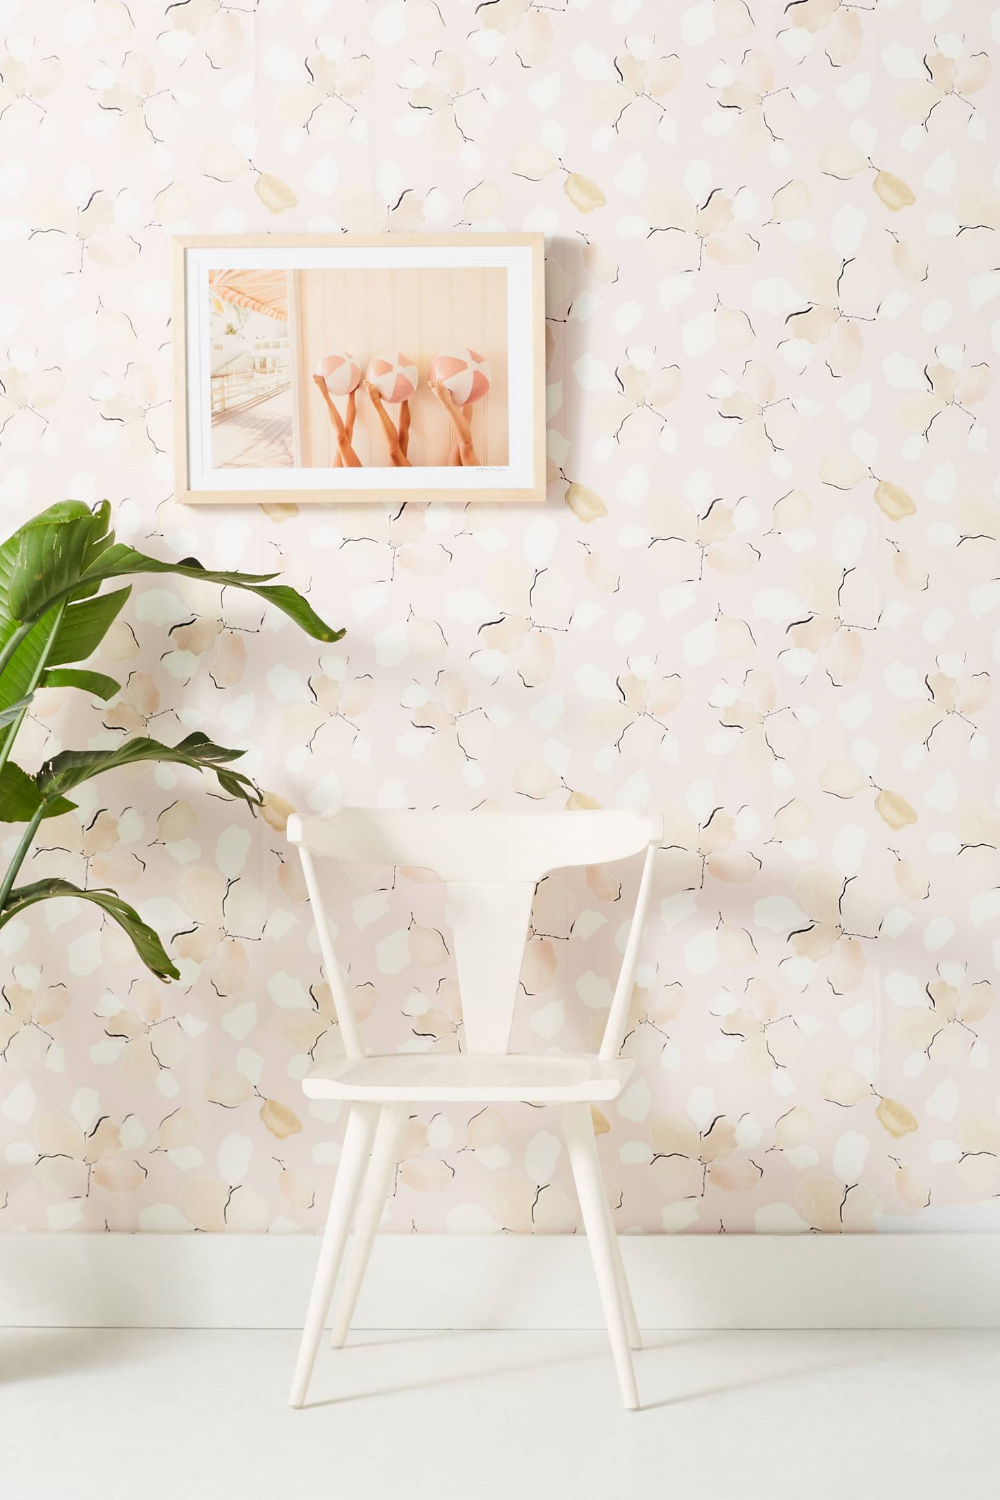 Anthropologie Thin Air Wallpaper in 2020 Temporary